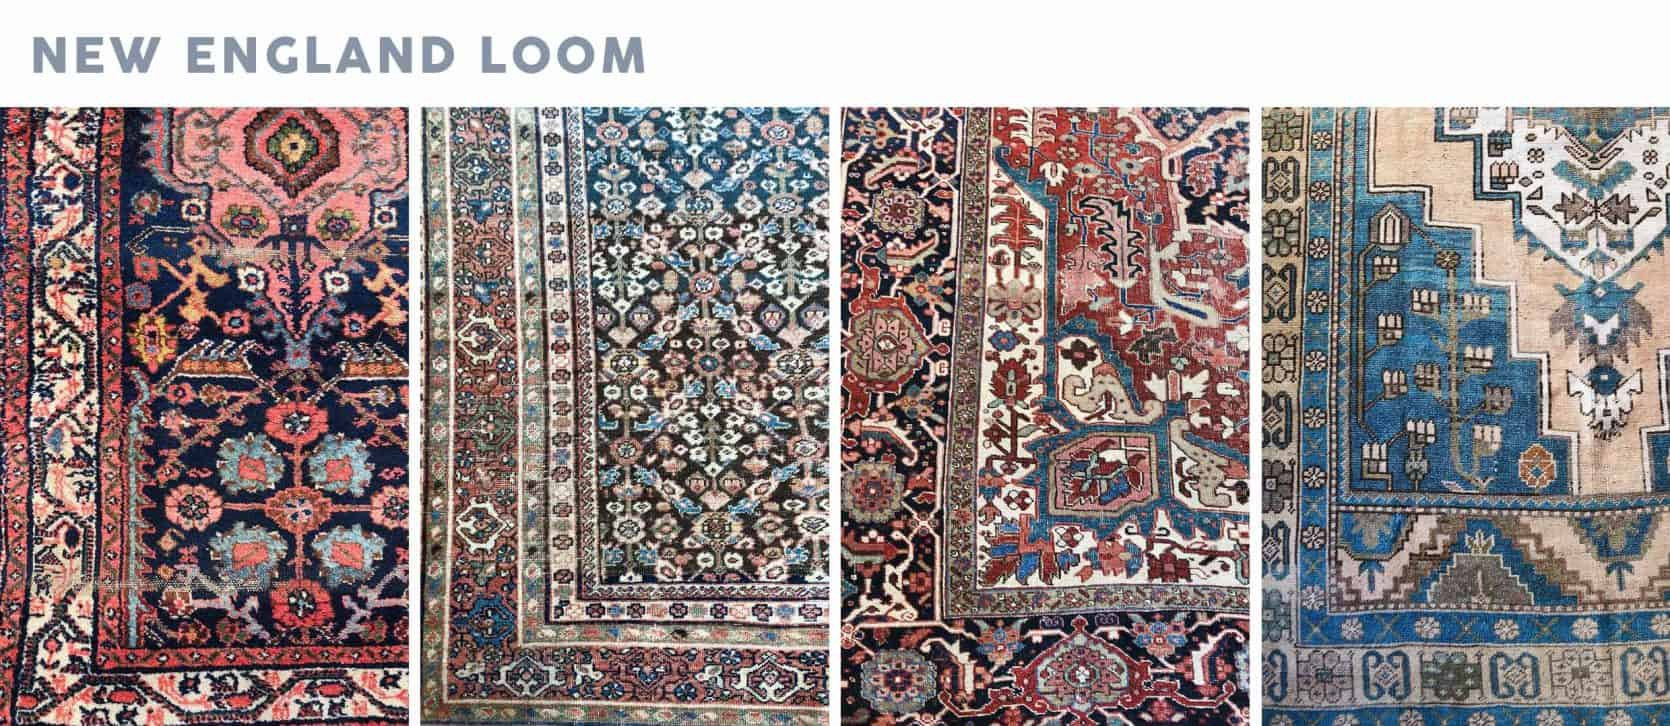 Emily Henderson Vintage Rugs Online Resource New England And Loom 1